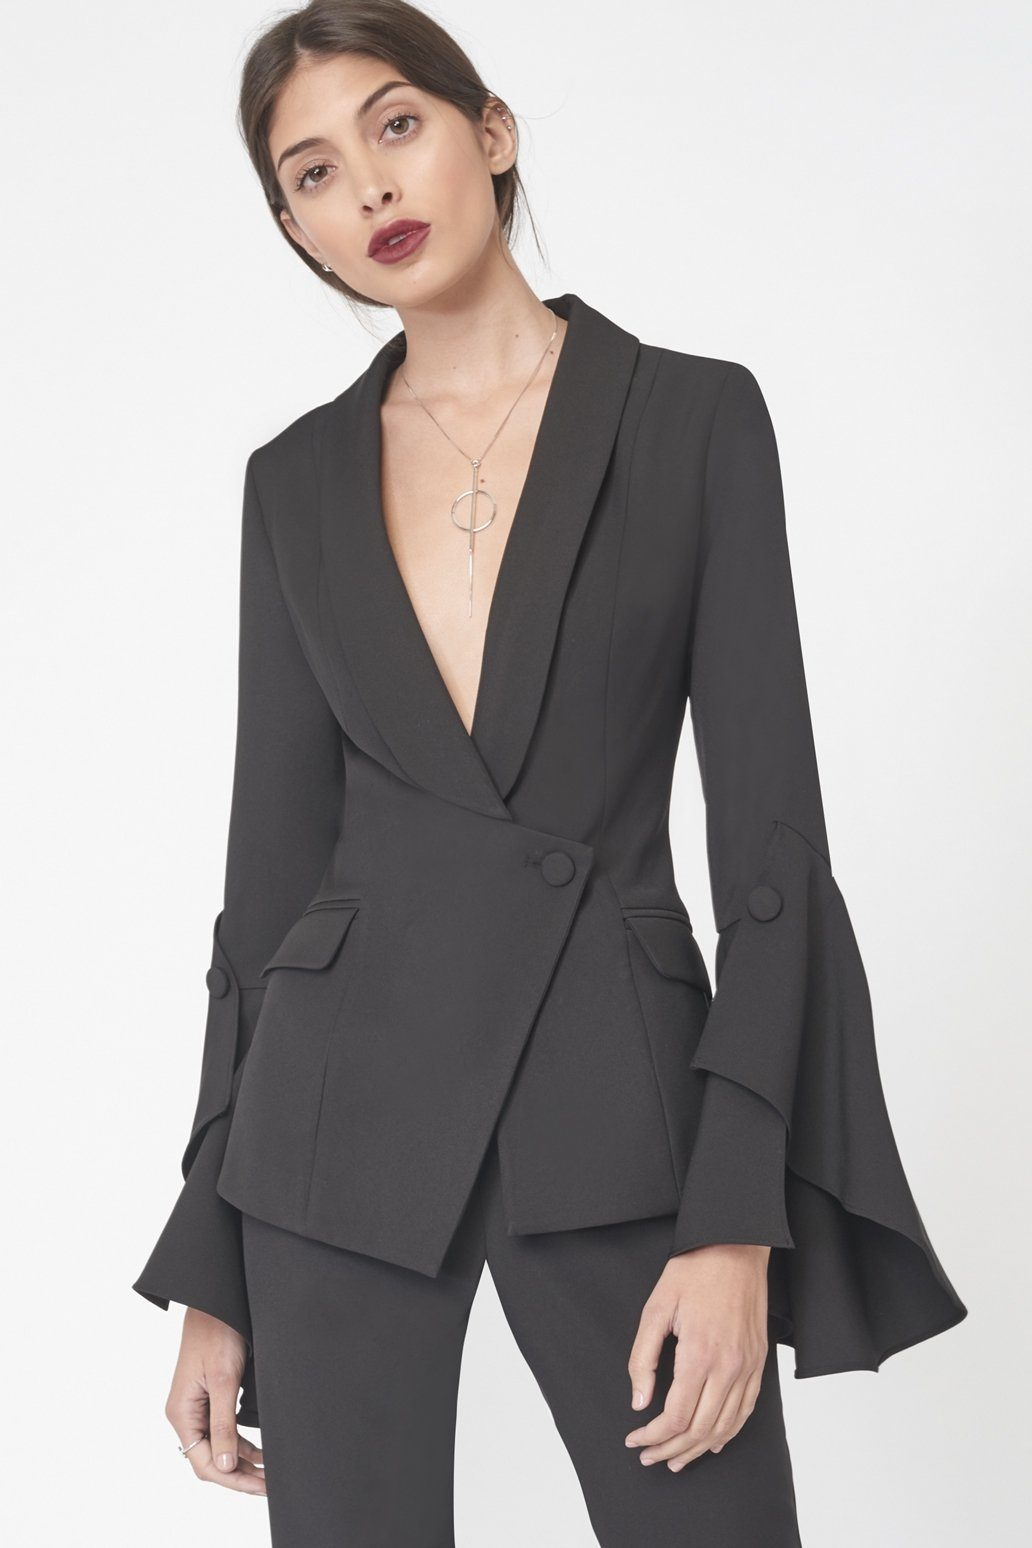 Bell Ruffle Tailored Blazer in Black